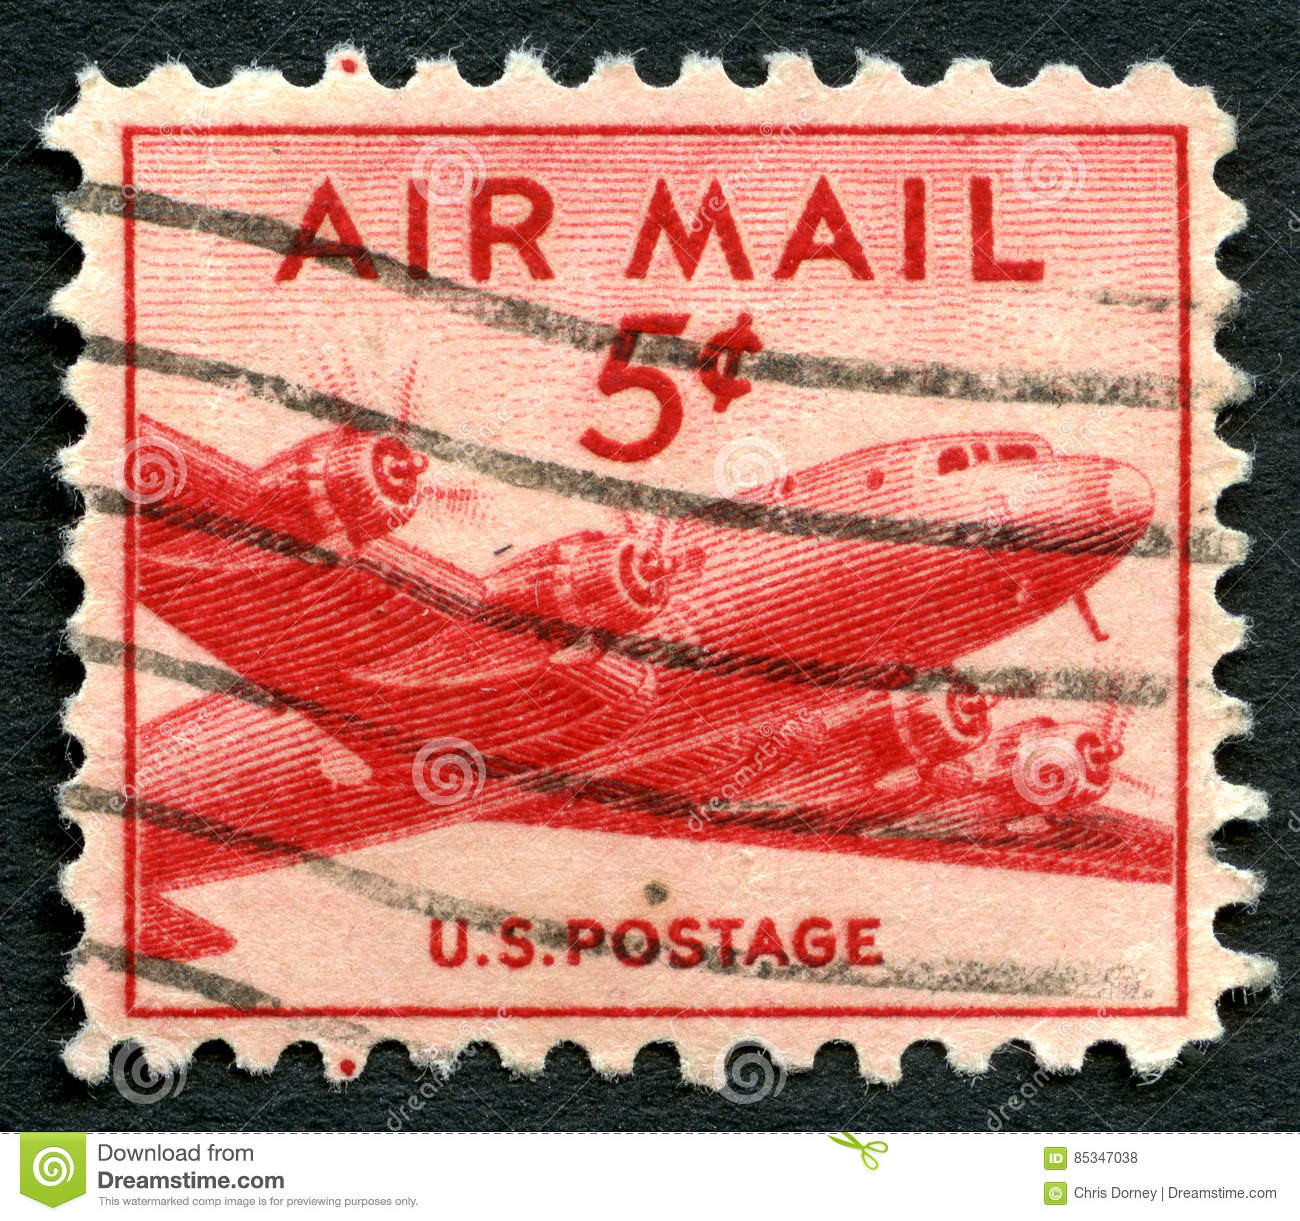 Old U.S. Air Mail Postage Stamps Royalty-Free Stock Photo